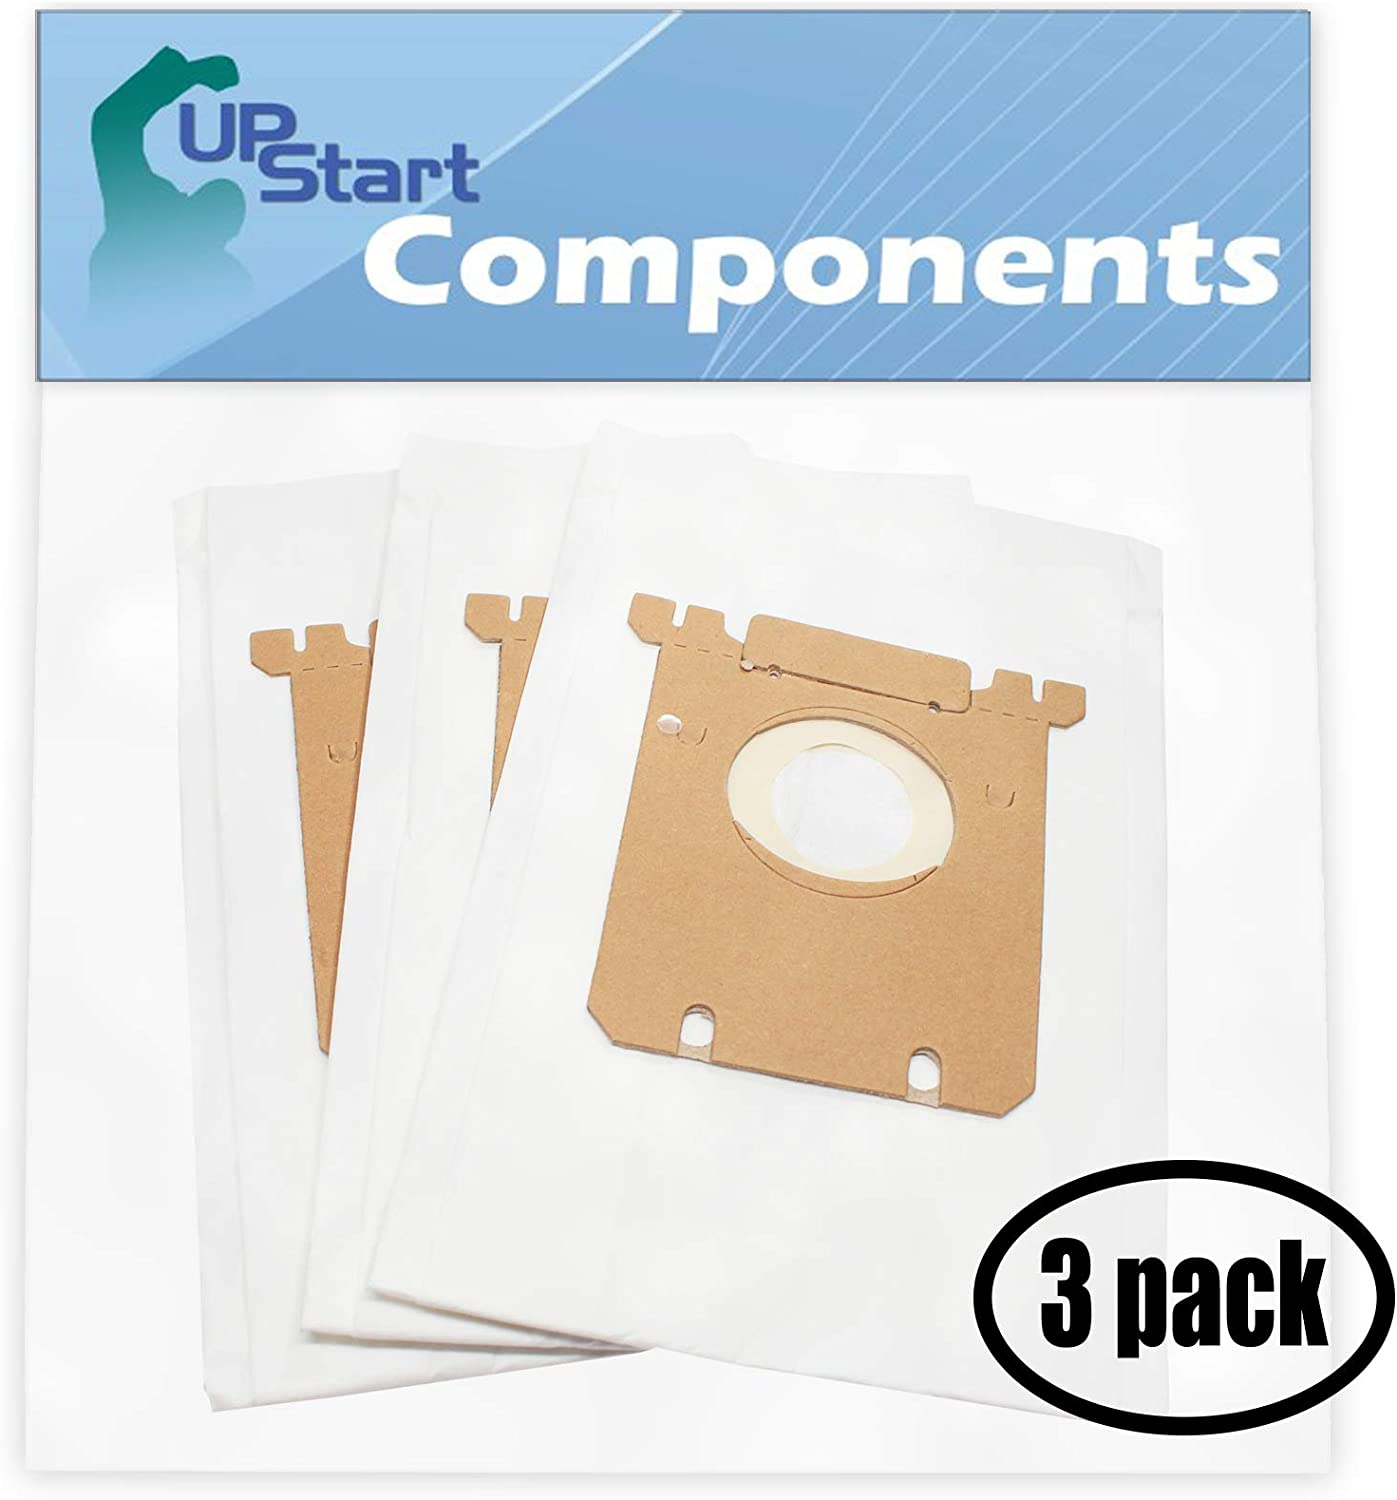 Upstart Battery 9 Replacement for Eureka 6982A Style S Vacuum Bags - Compatible with Eureka 61230F, OX Vacuum Bags (3-Pack - 3 Vacuum Bags per Pack)